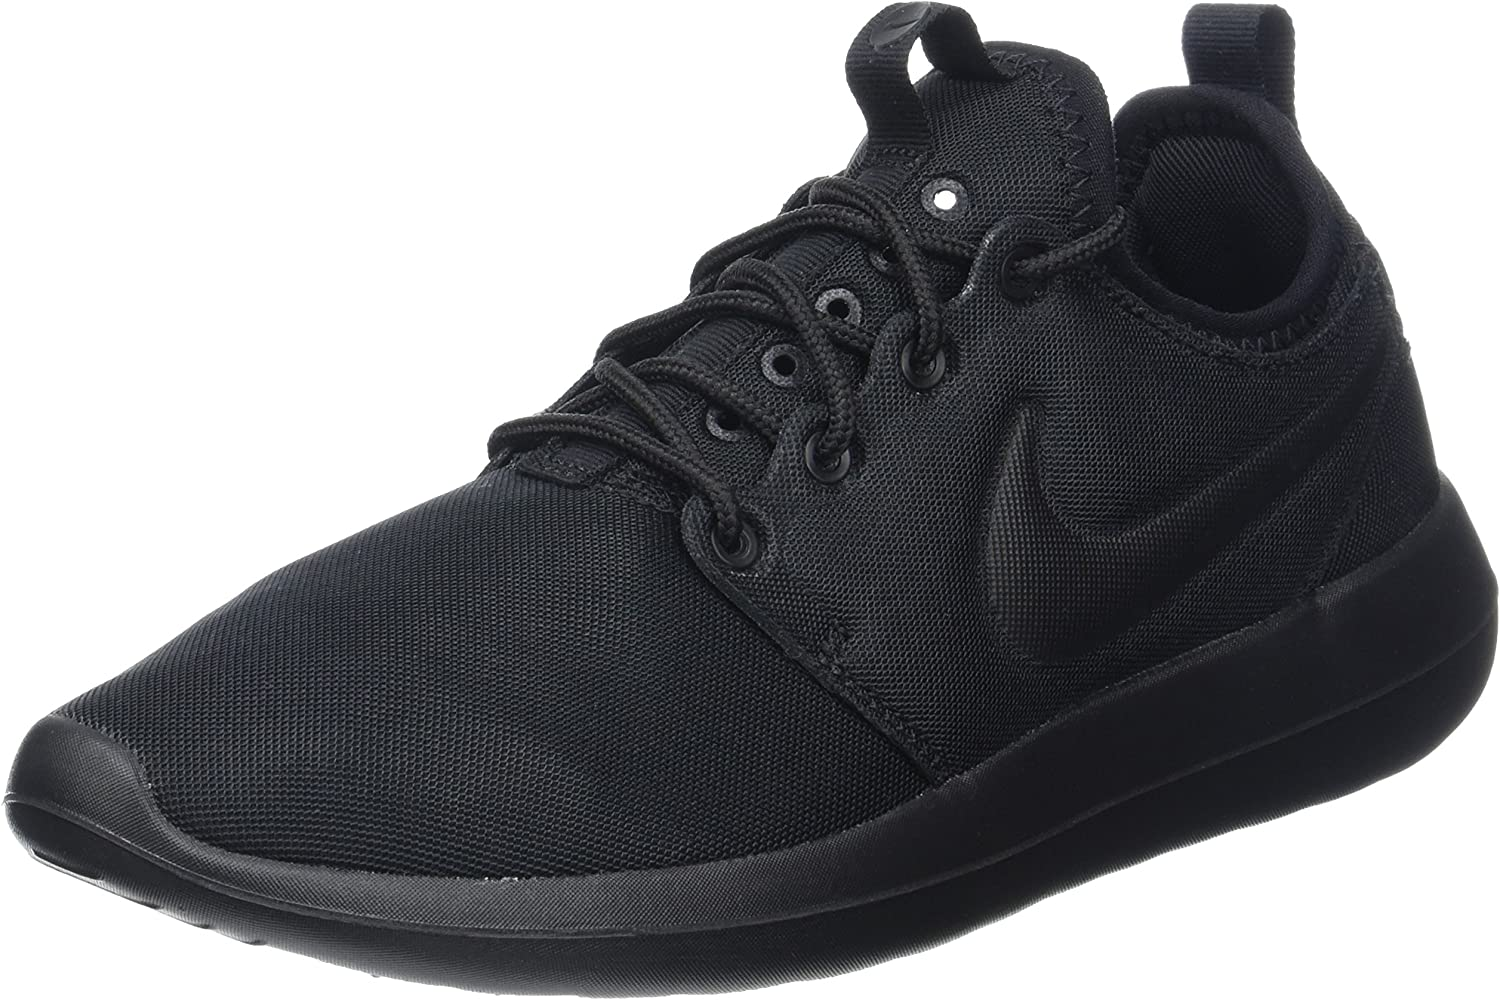 Nike Womens Roshe Two Running Shoes